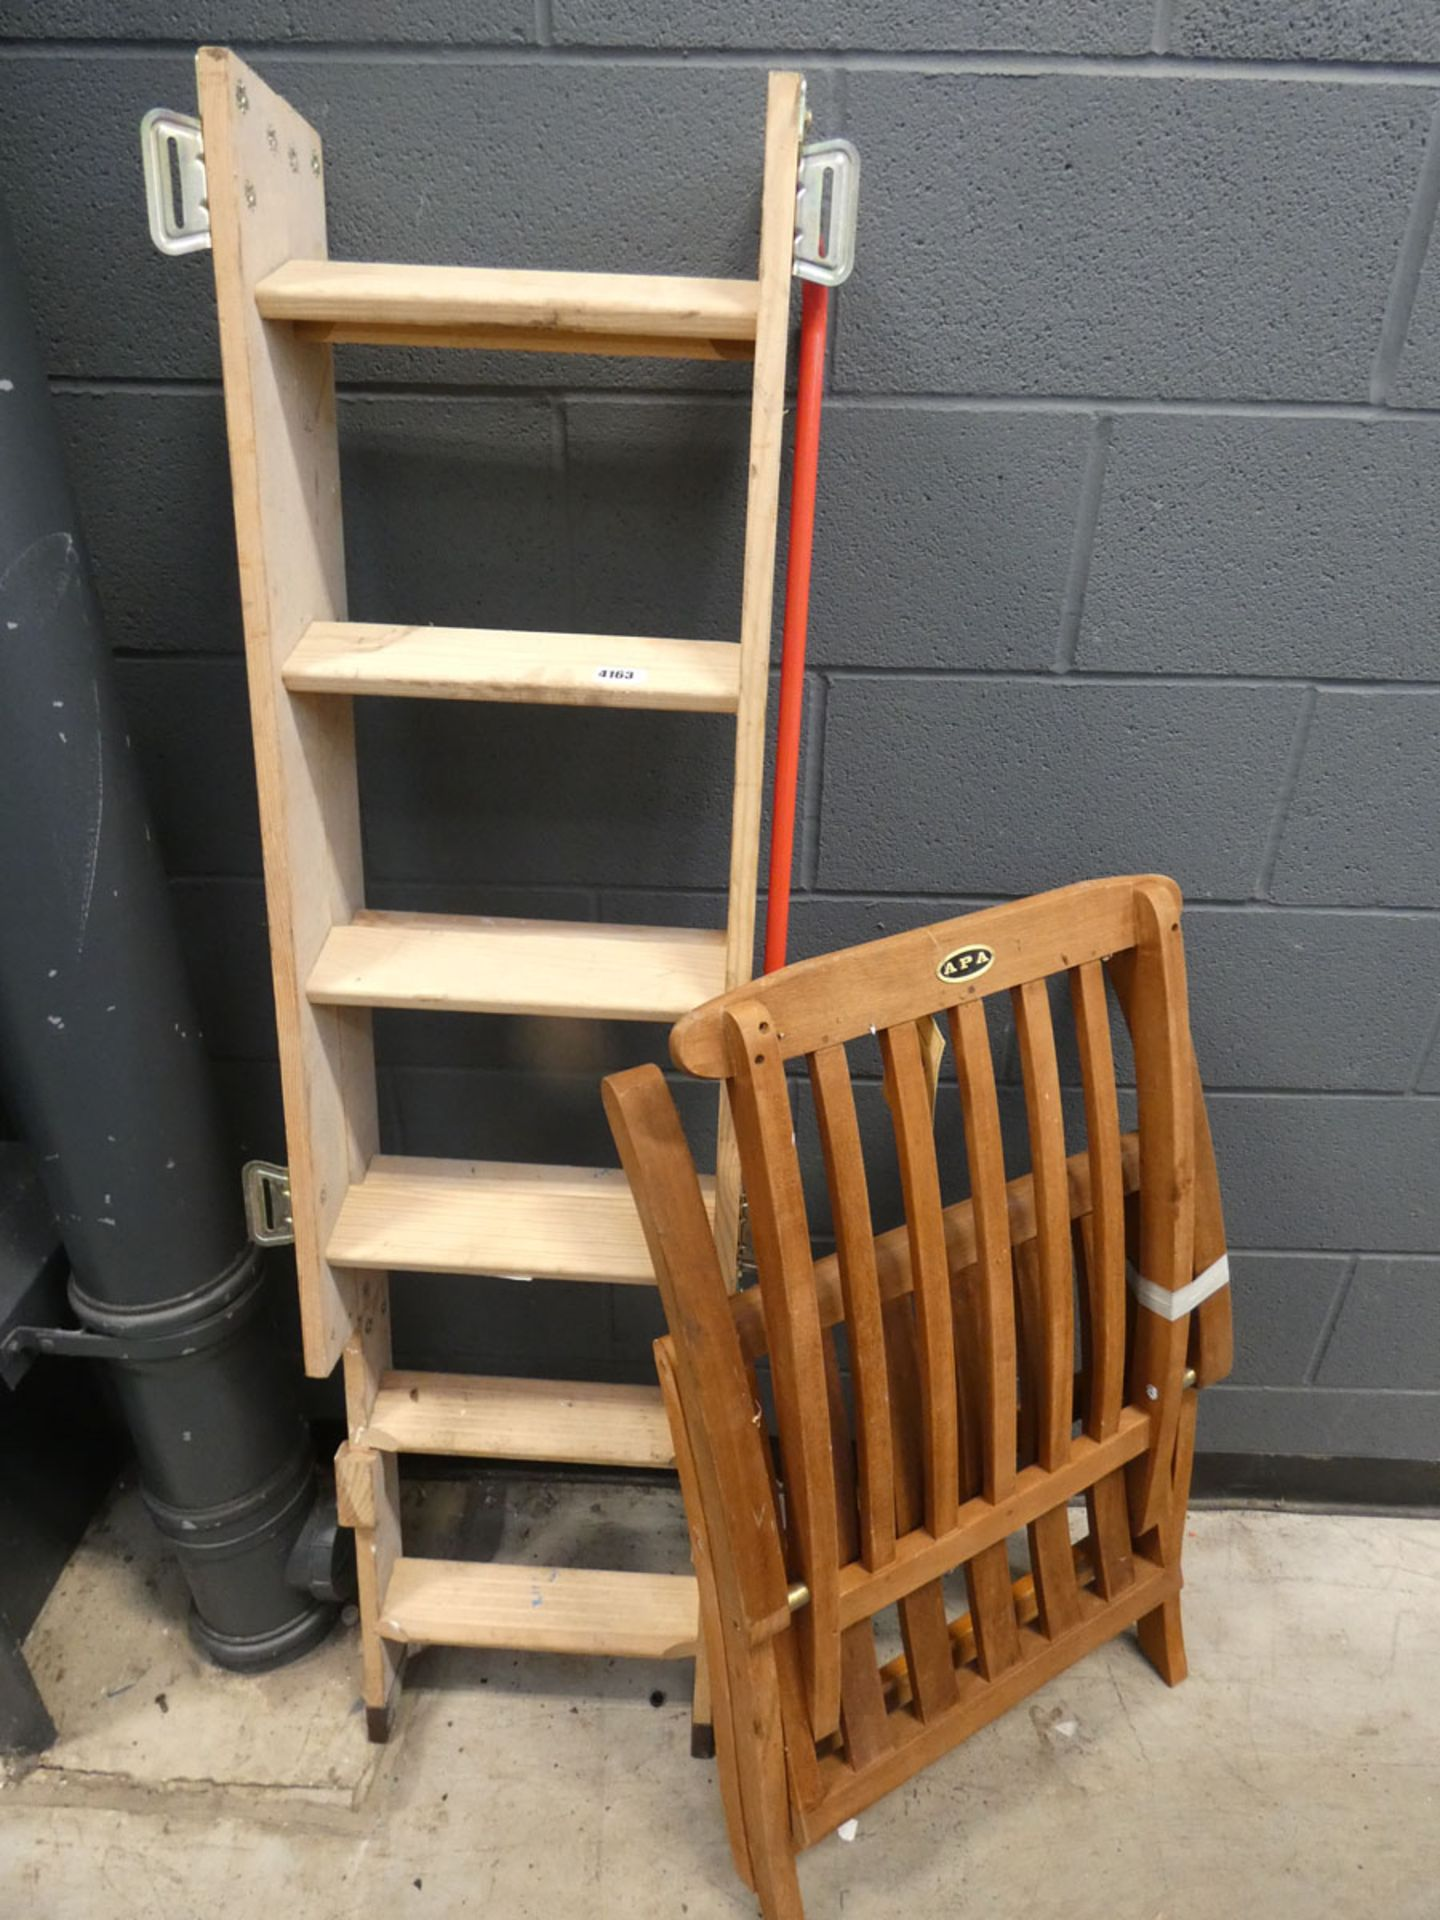 Wooden loft ladder (no hatch) and wooden fold up chair